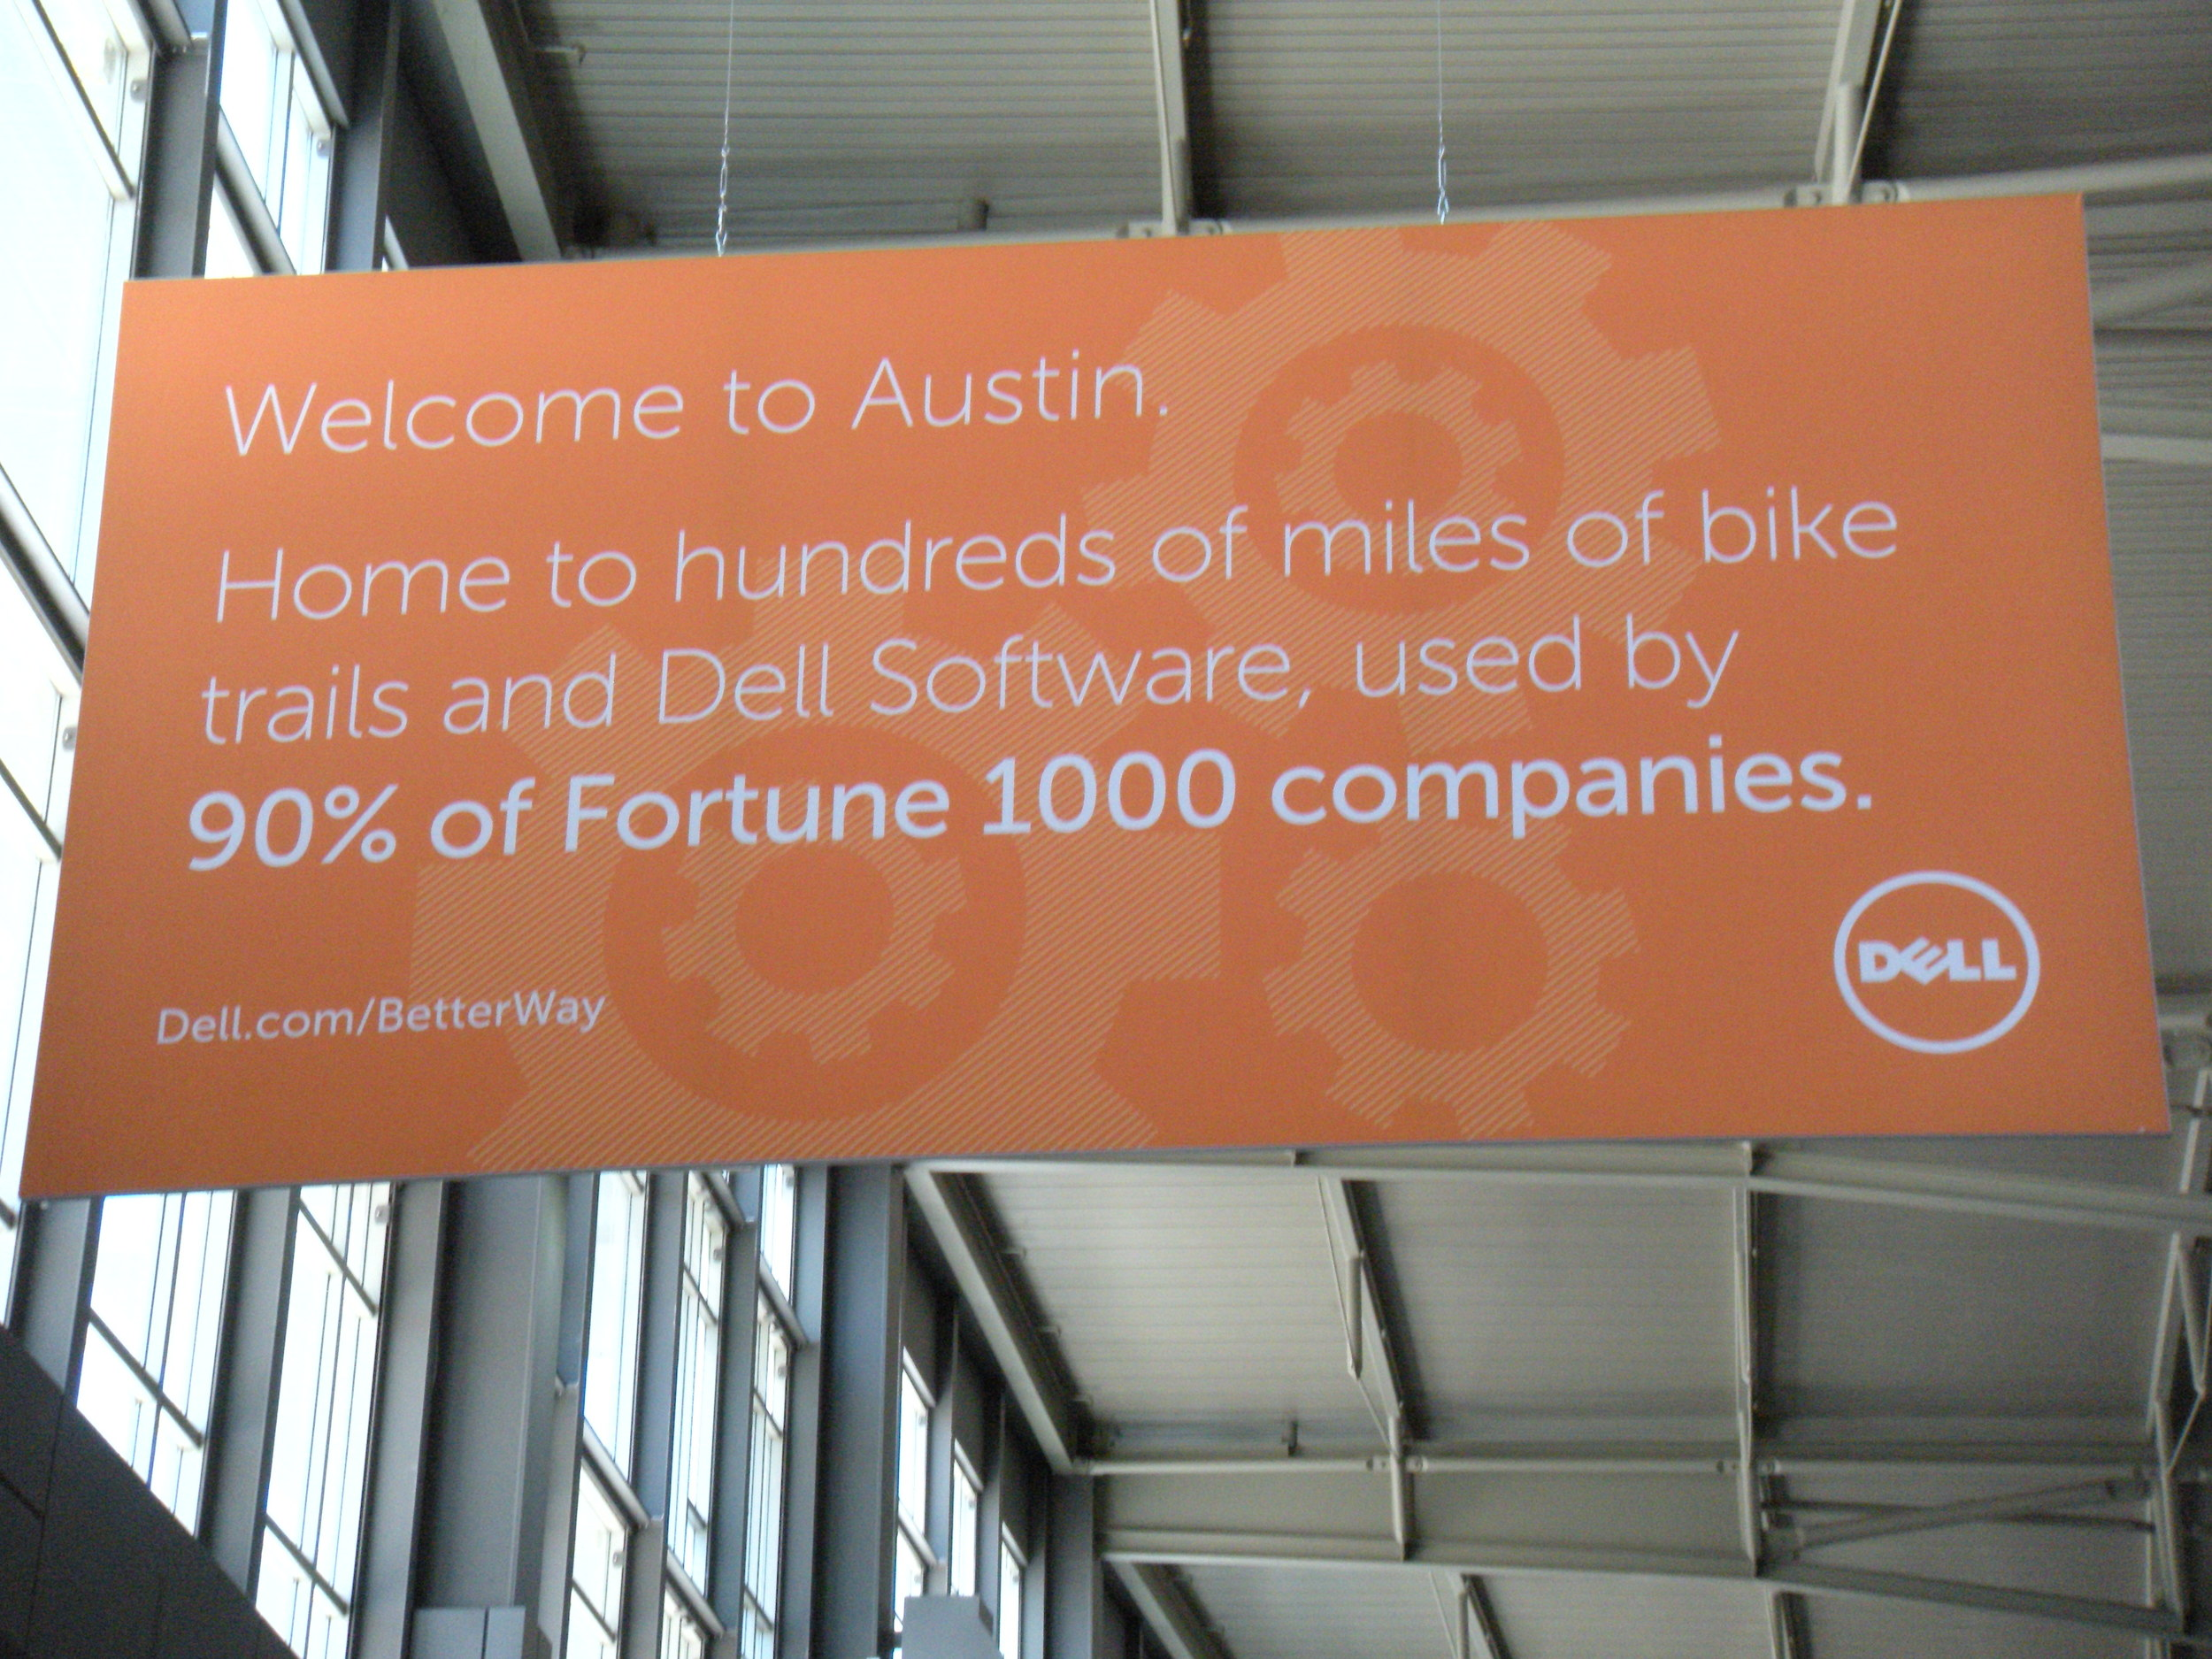 Dell is all over the place in Austin. I wonder why.